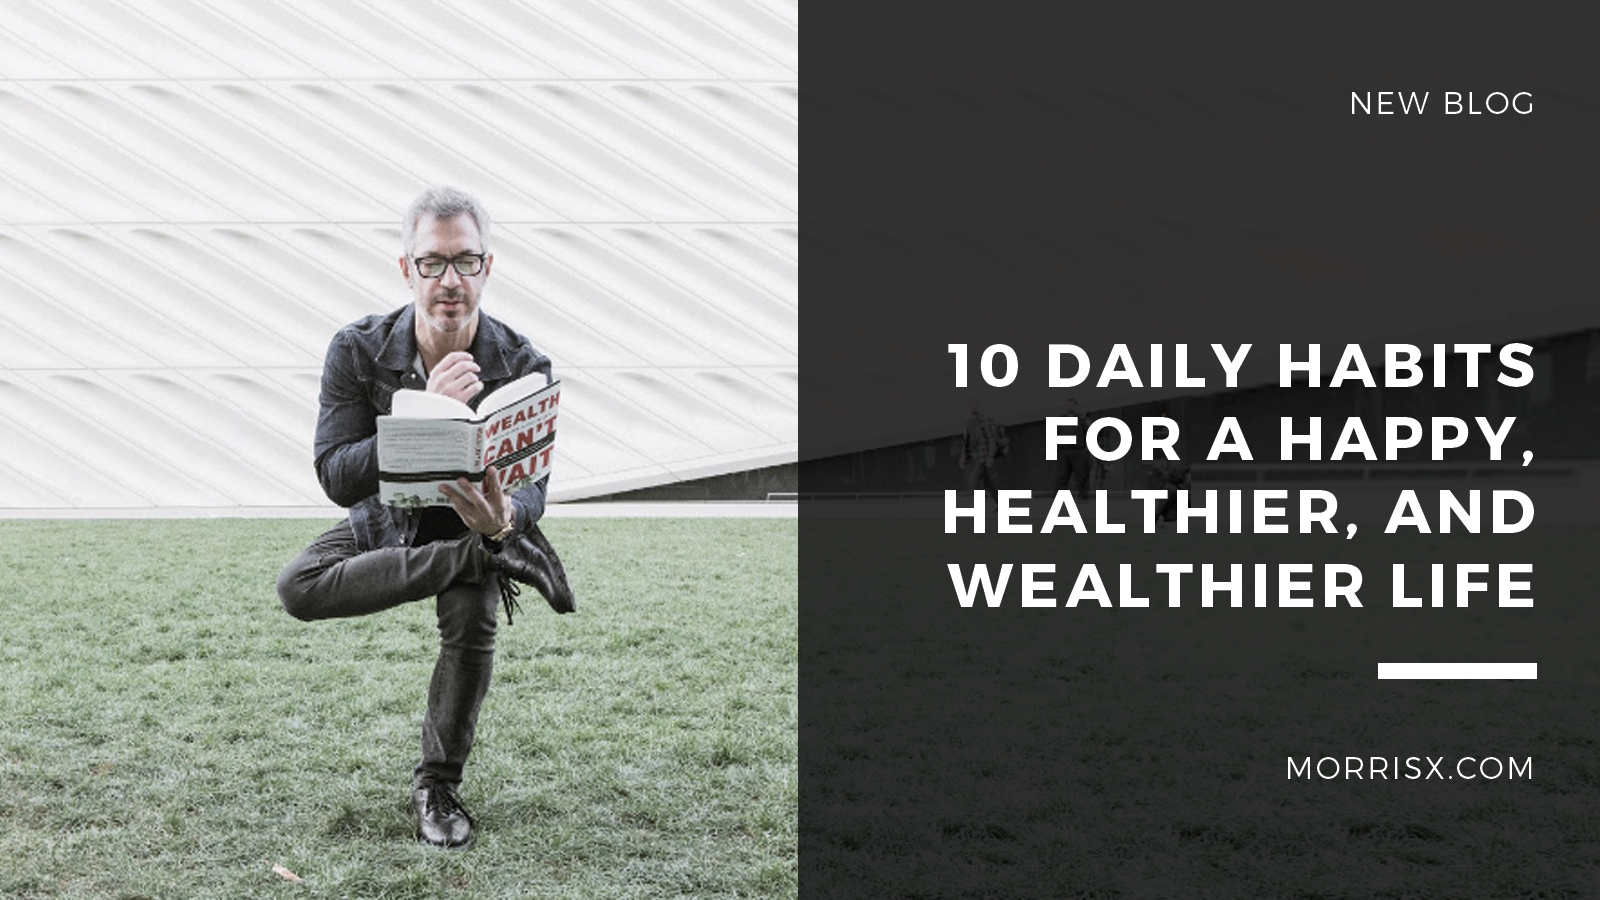 10 Daily Habits For A Happy, Healthier, And Wealthier Life